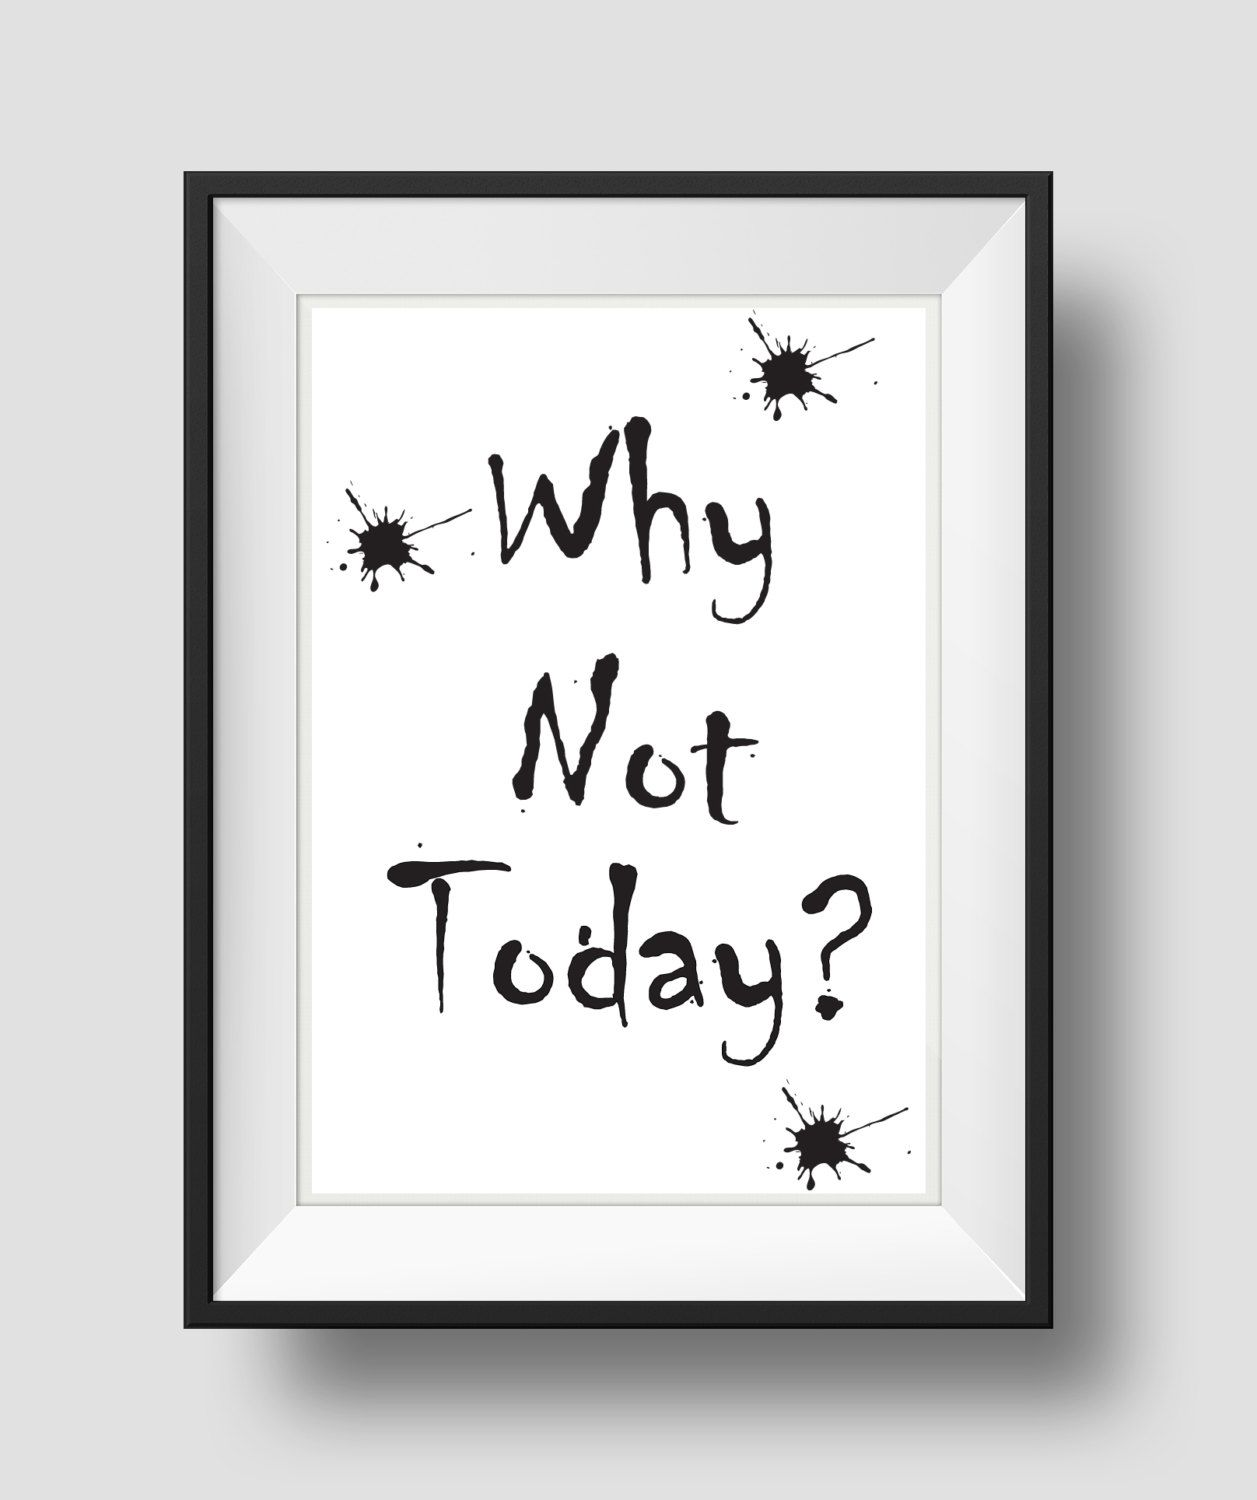 Why Not Today Inspirational Quote Motivational Print Watercolor Wall Art Typography Poster Word Art Instant Motivational Prints Typography Poster Art Gift